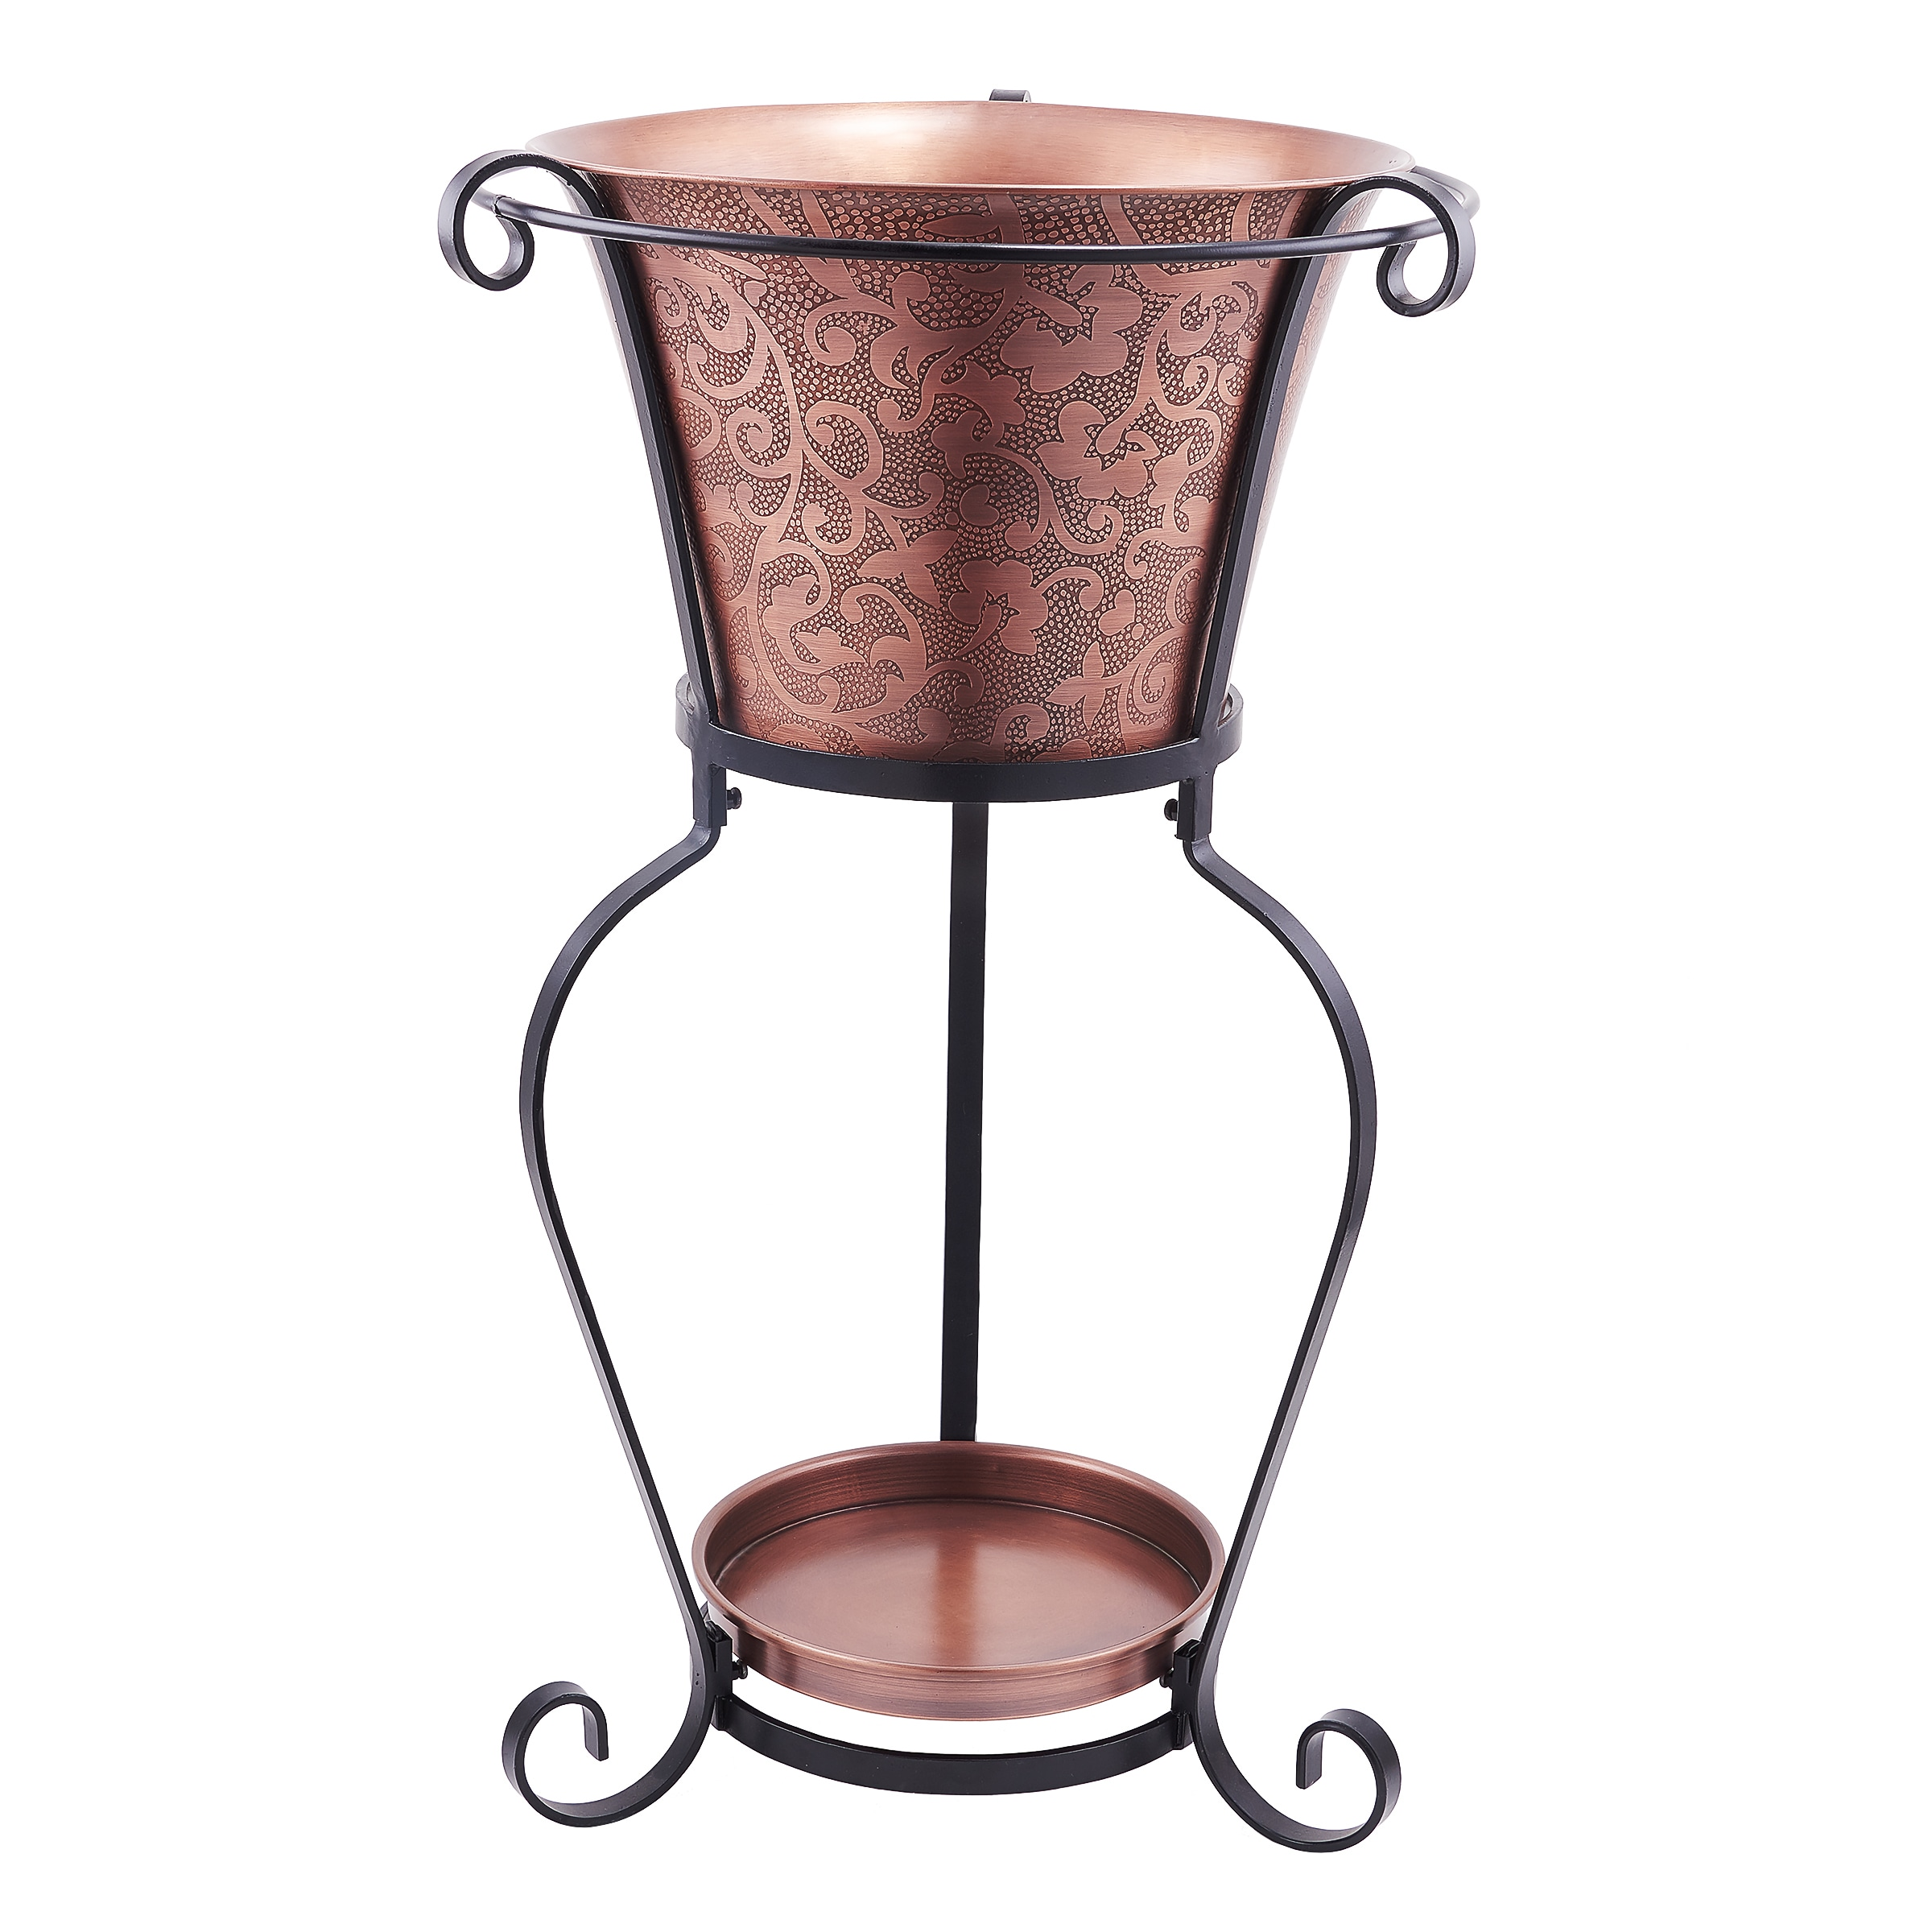 Shop Black Friday Deals On 19 75 X 32 Solid Copper Etched Beverage Tub With Stand 5 Galllon Overstock 10702058